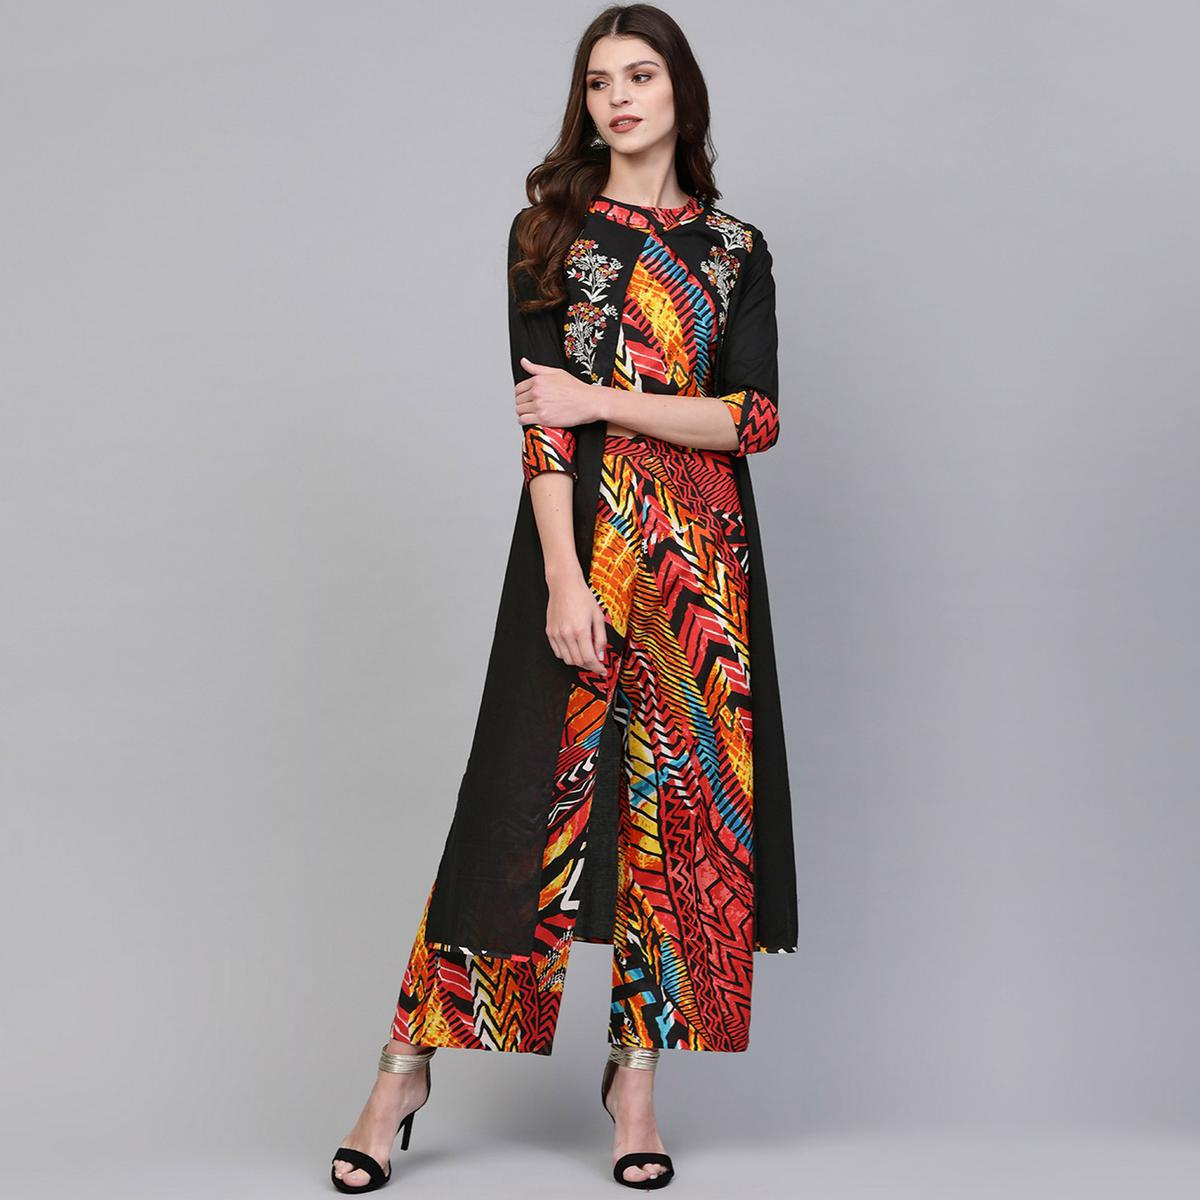 Gleaming Multi-Black Colored Party Wear Embroidered-Printed Cotton Top-Palazzo Set With Jacket